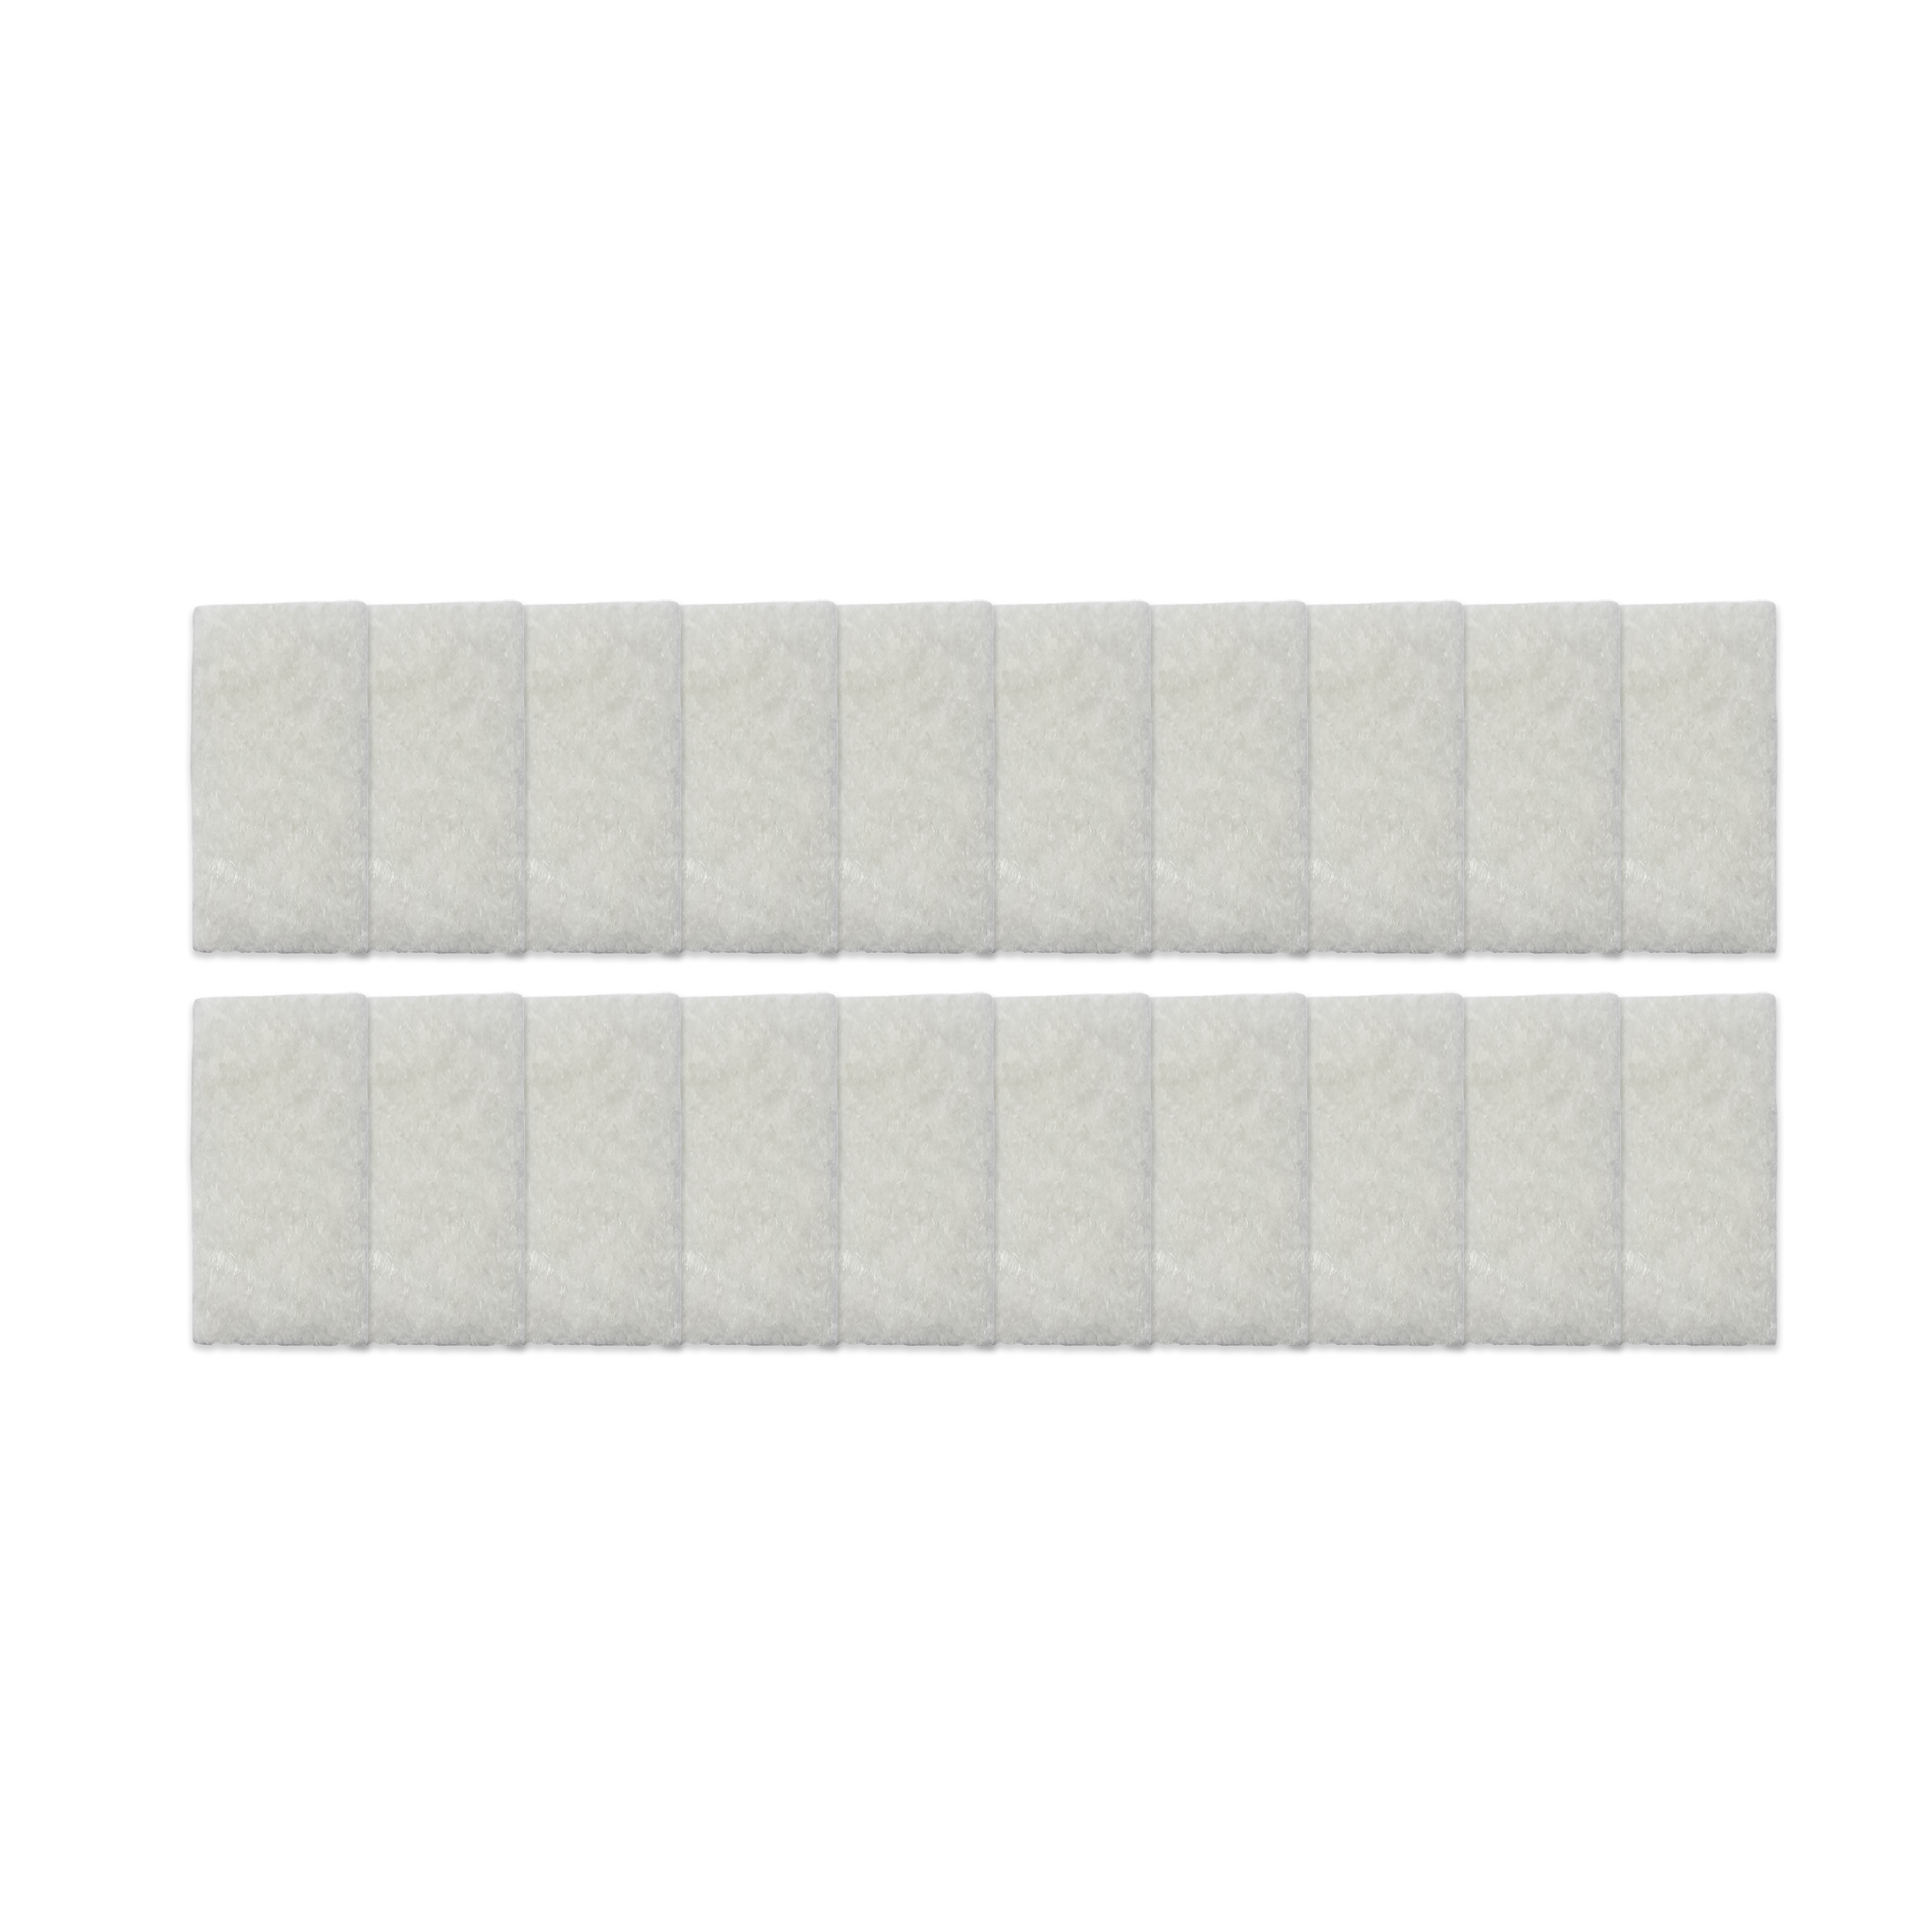 AIRCARE AURP10PK Aircare Essential Oil Diffuser Pad Refill - Pack of 20